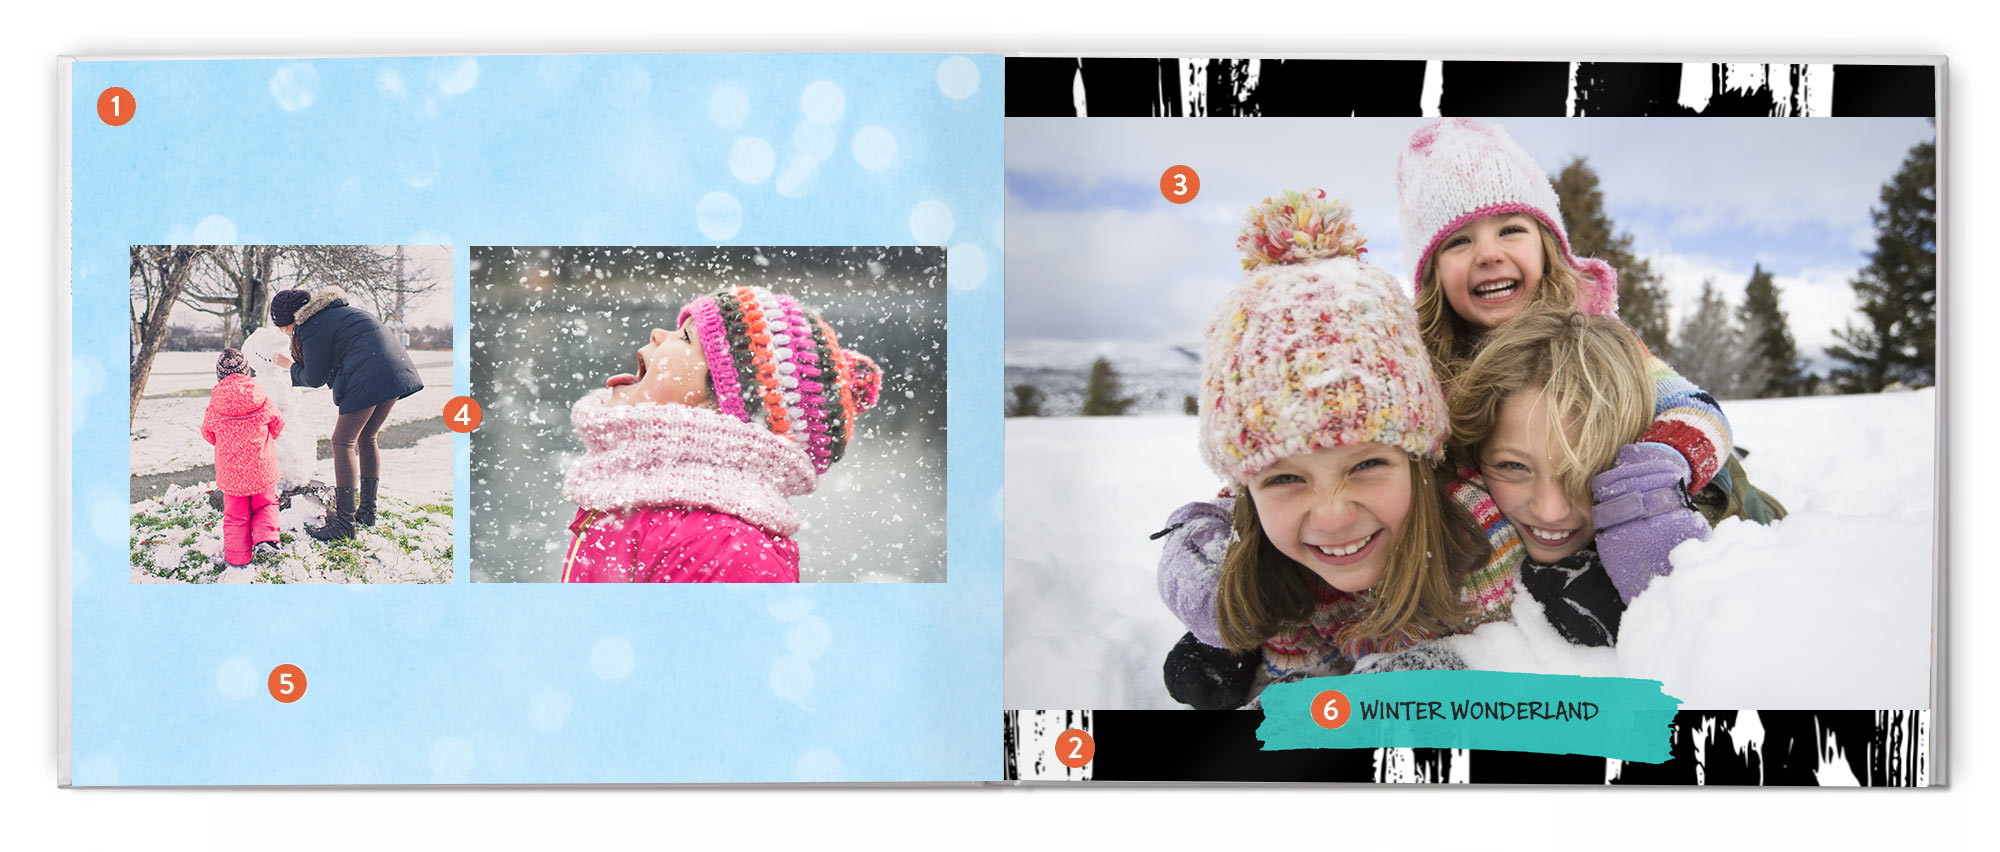 Easy-to-use photo book tools : With tools that make it easy to upload and arrange photos and personalise every page, you don't have to spend a lot of time to make a beautiful book.